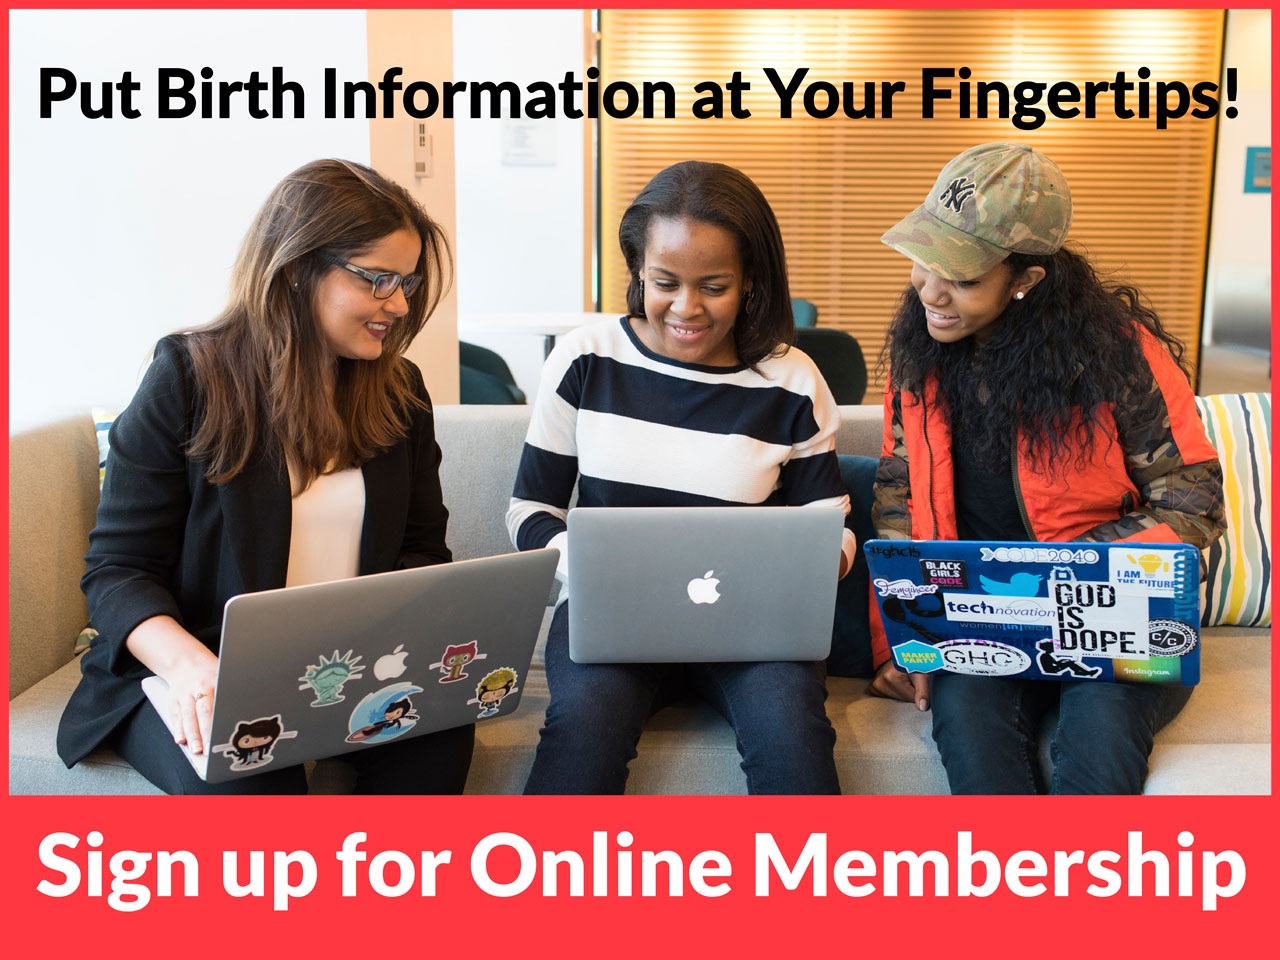 Sign up for a Midwifery Today Website Membership